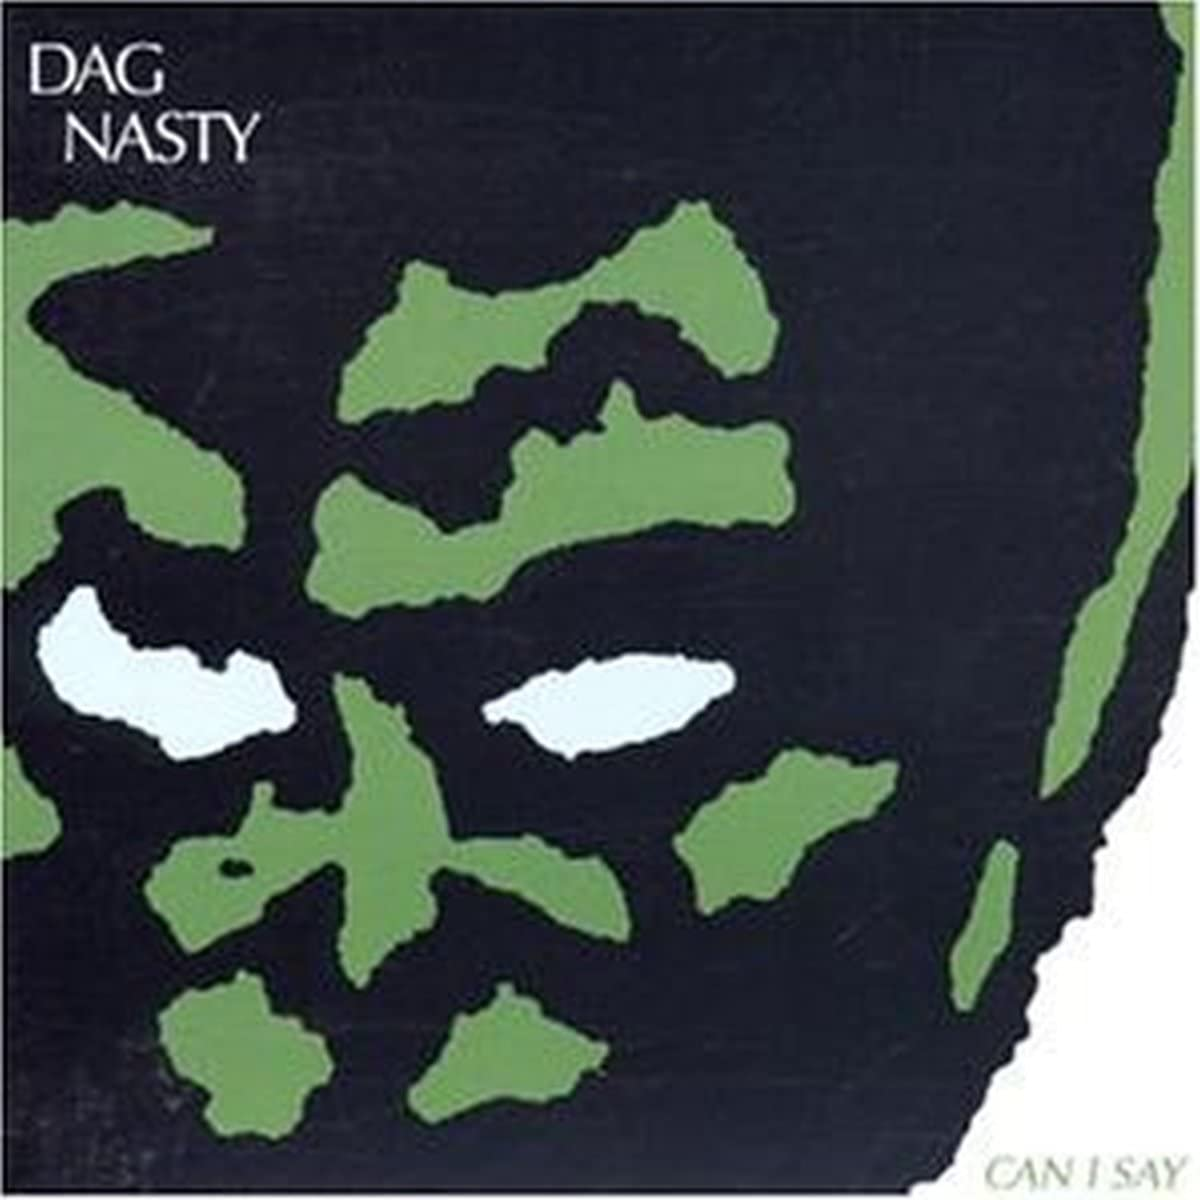 Dag Nasty/Can I Say [CD]